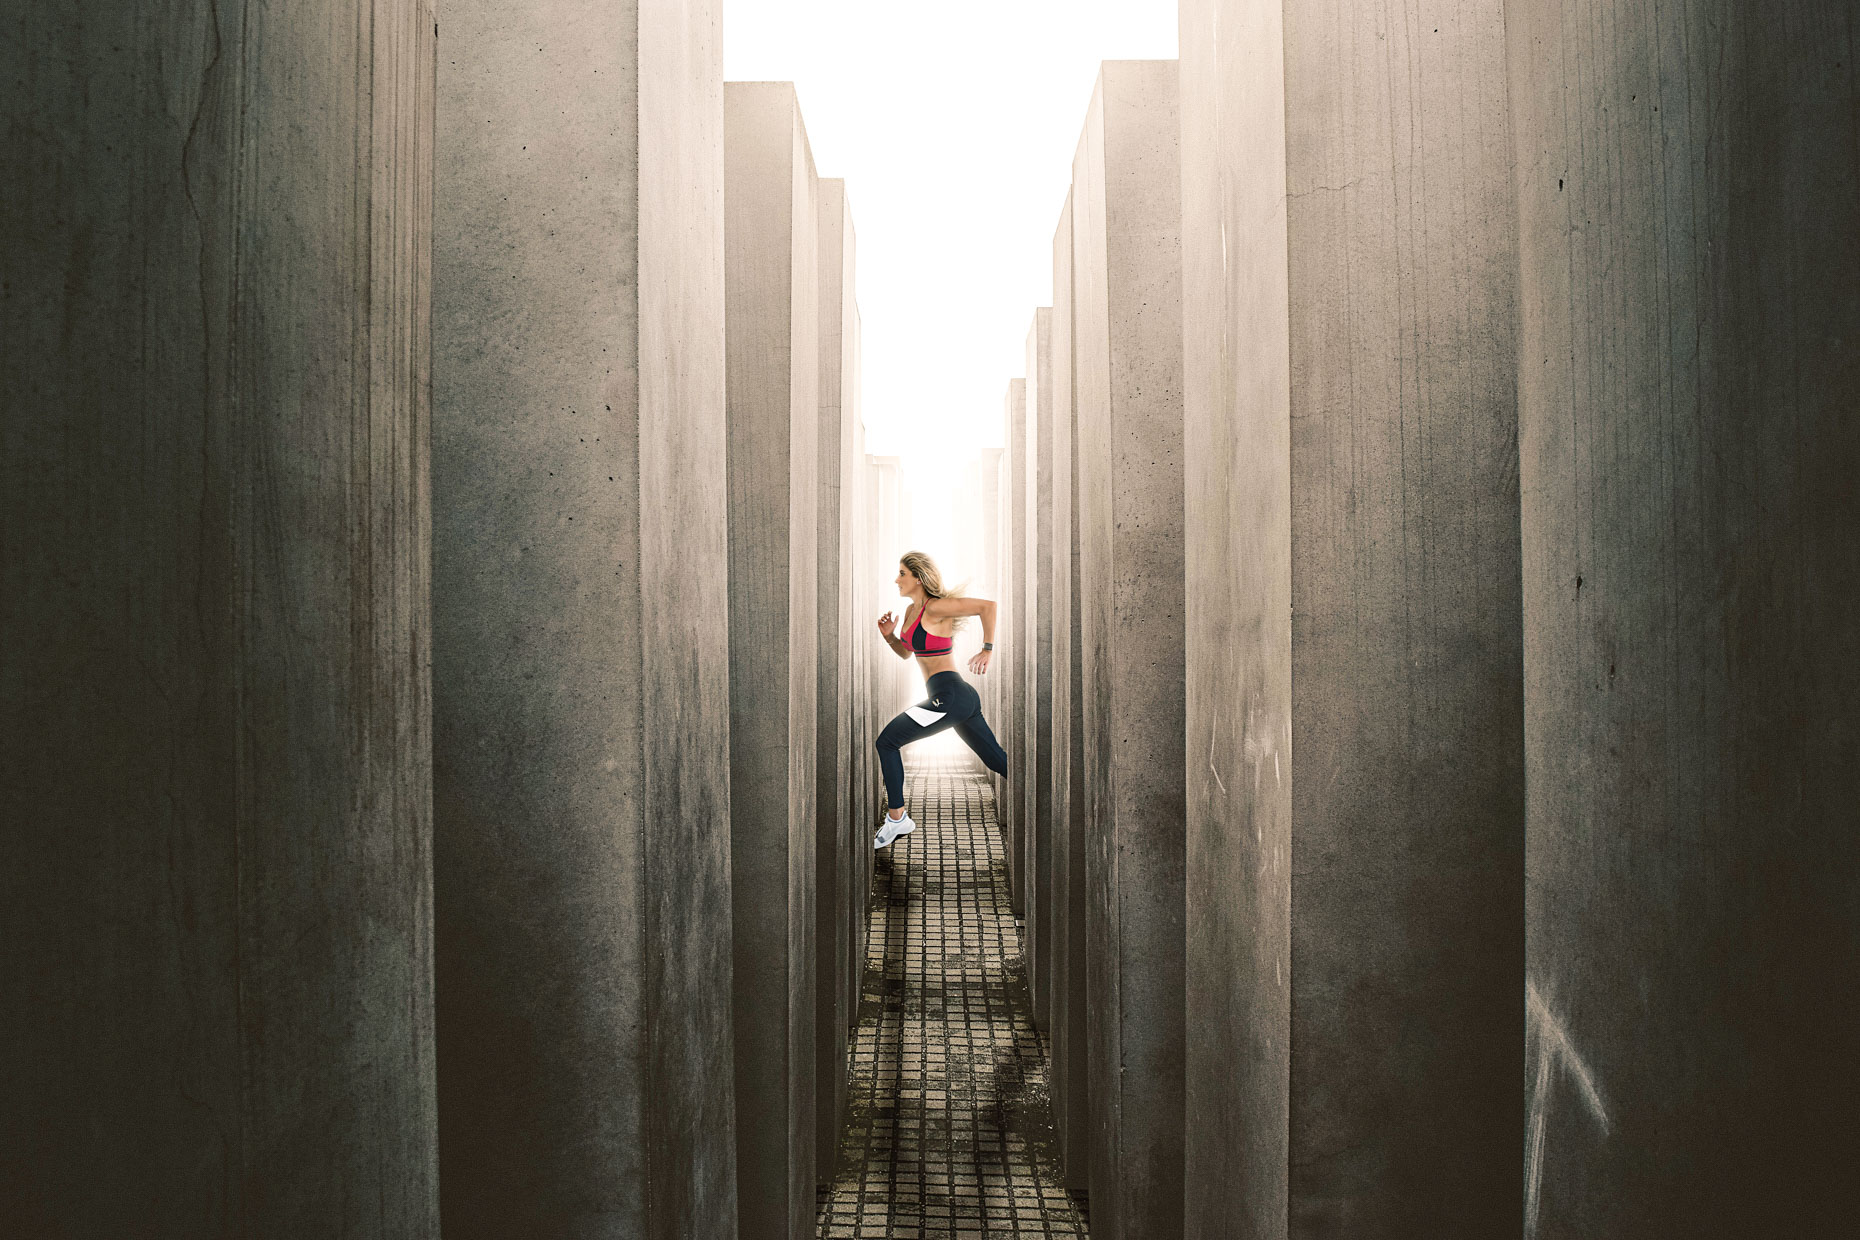 Runner sprinting between concrete pillars - conceptual composite photography